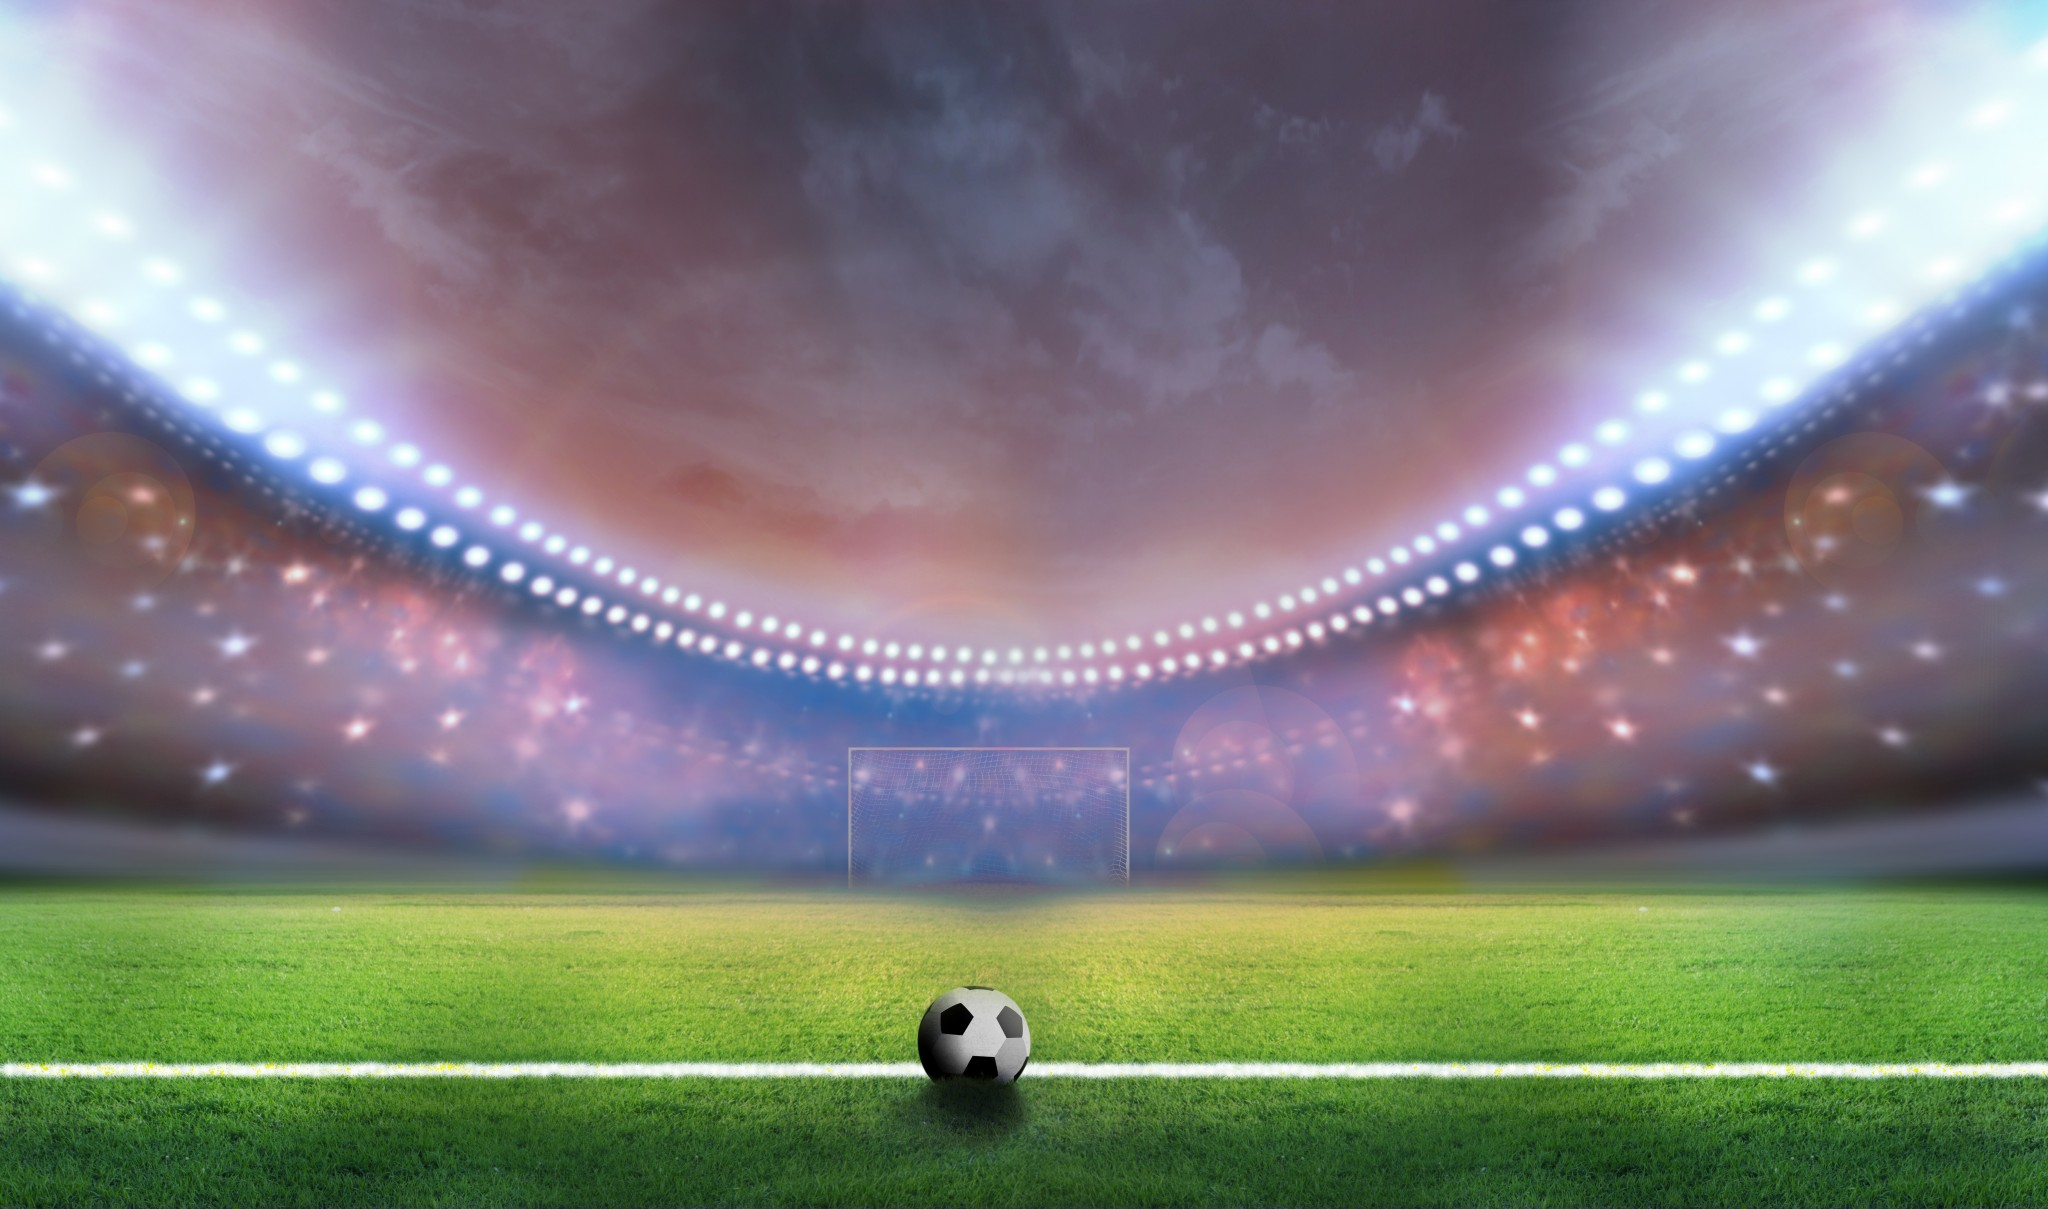 The Impact of World Cup Soccer On Stock Markets